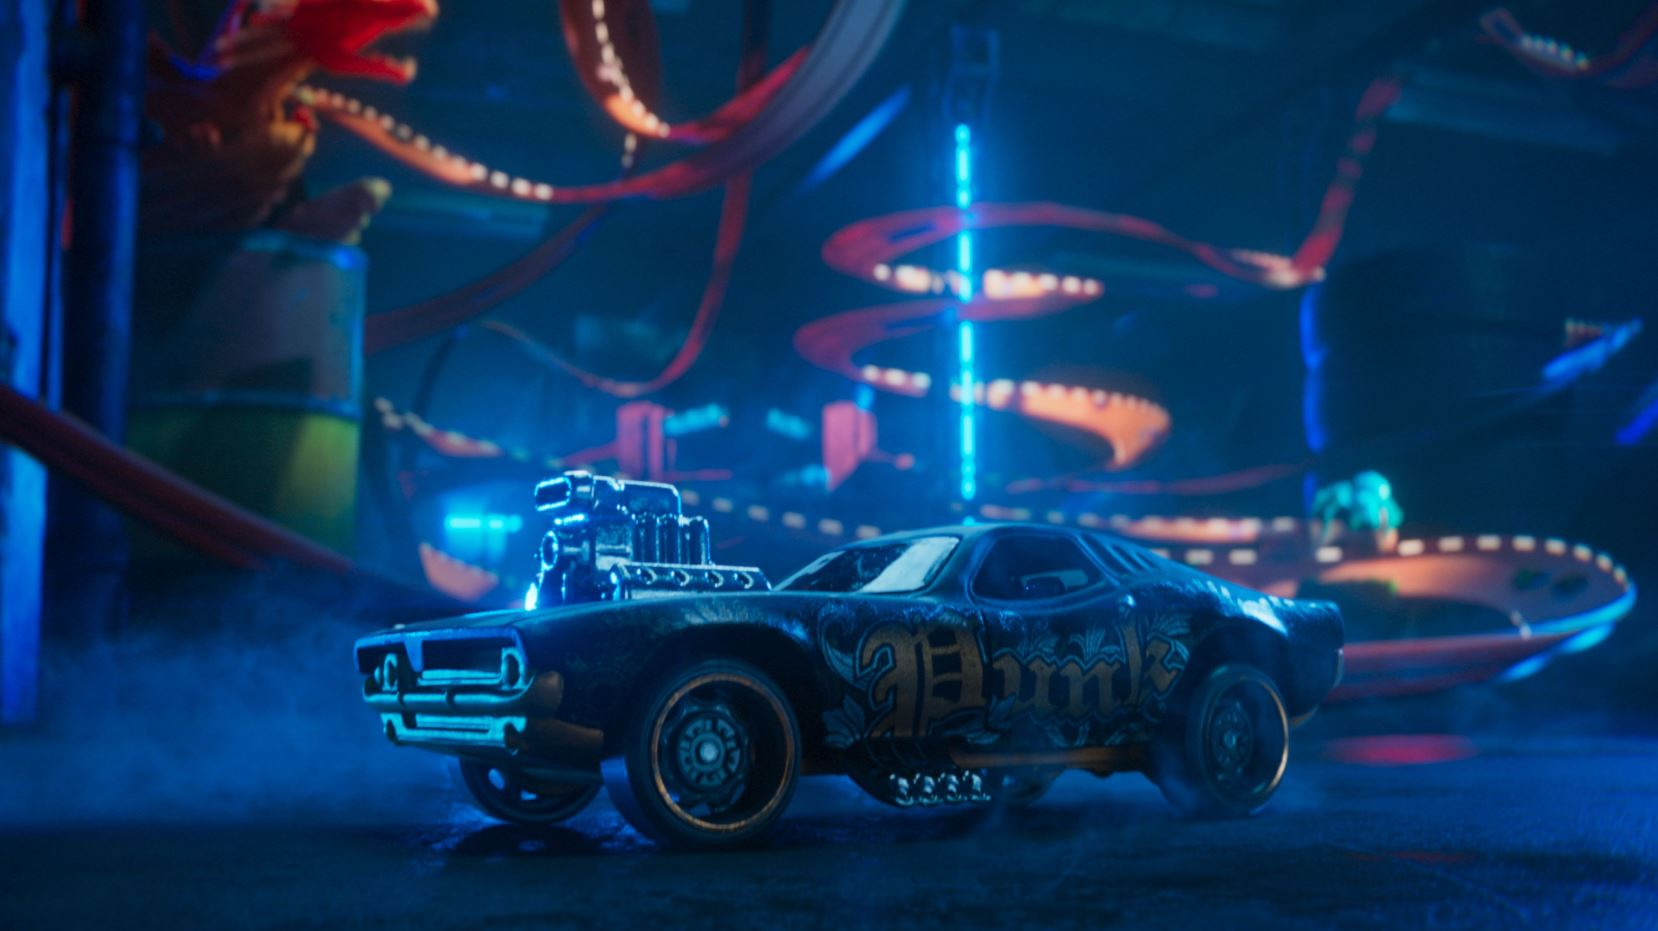 hot-wheels-unleashed-announced-for-ps5-and-ps4-with-september-release-date-includes-both-single-player-and-multiplayer-modes